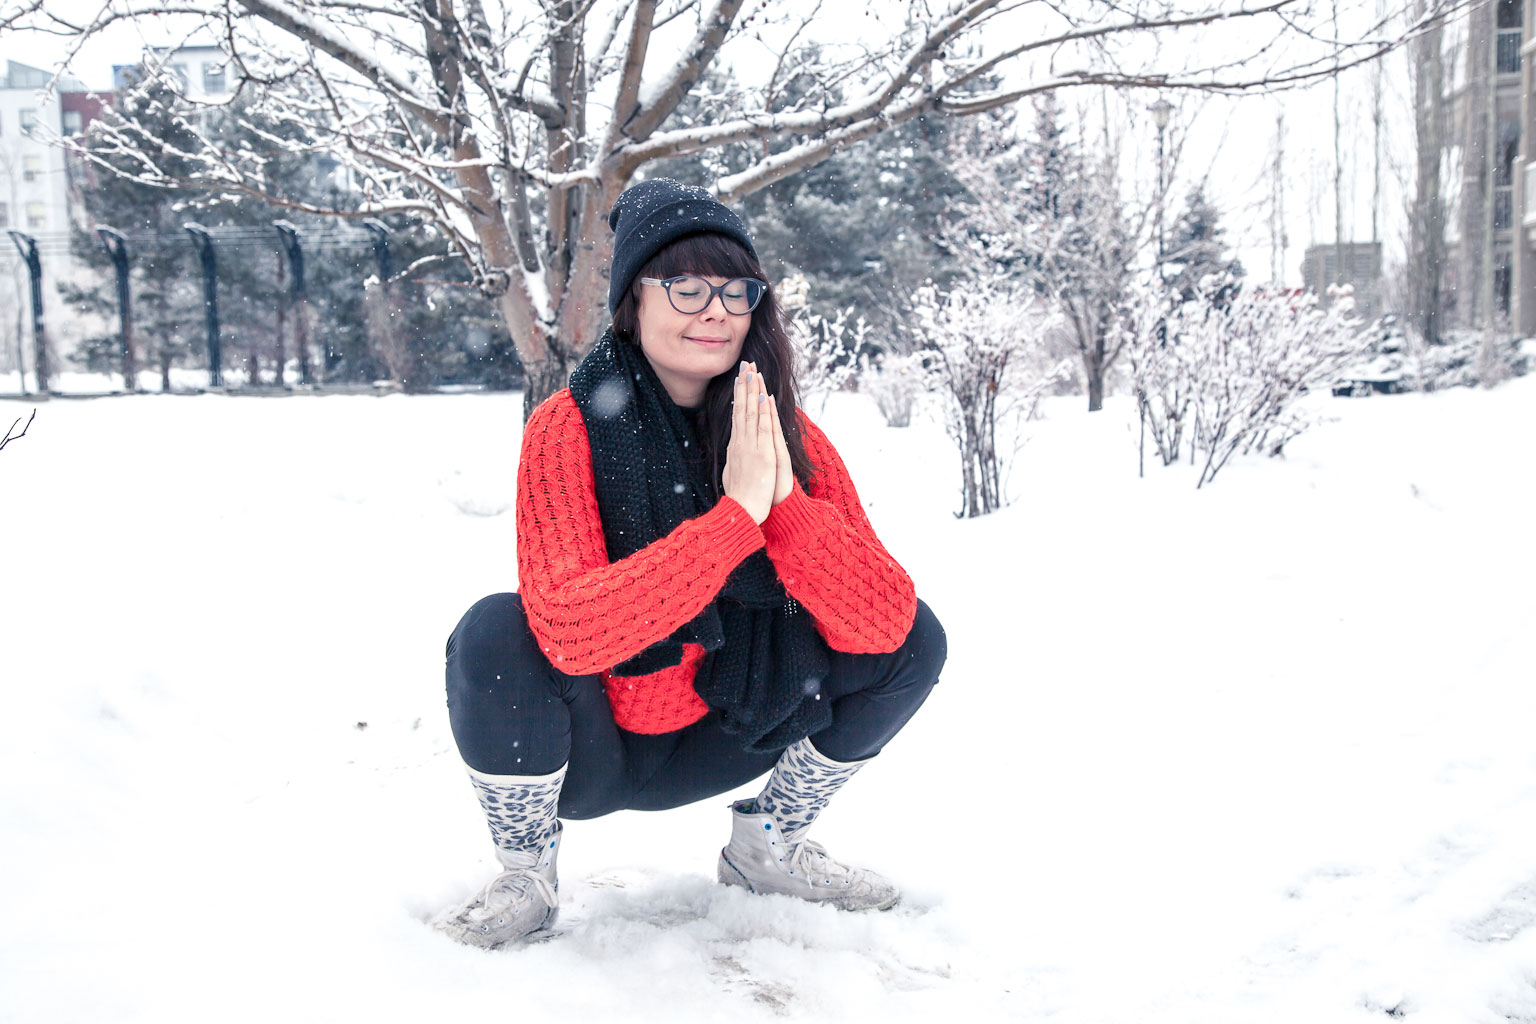 garland pose in a winter wonderland